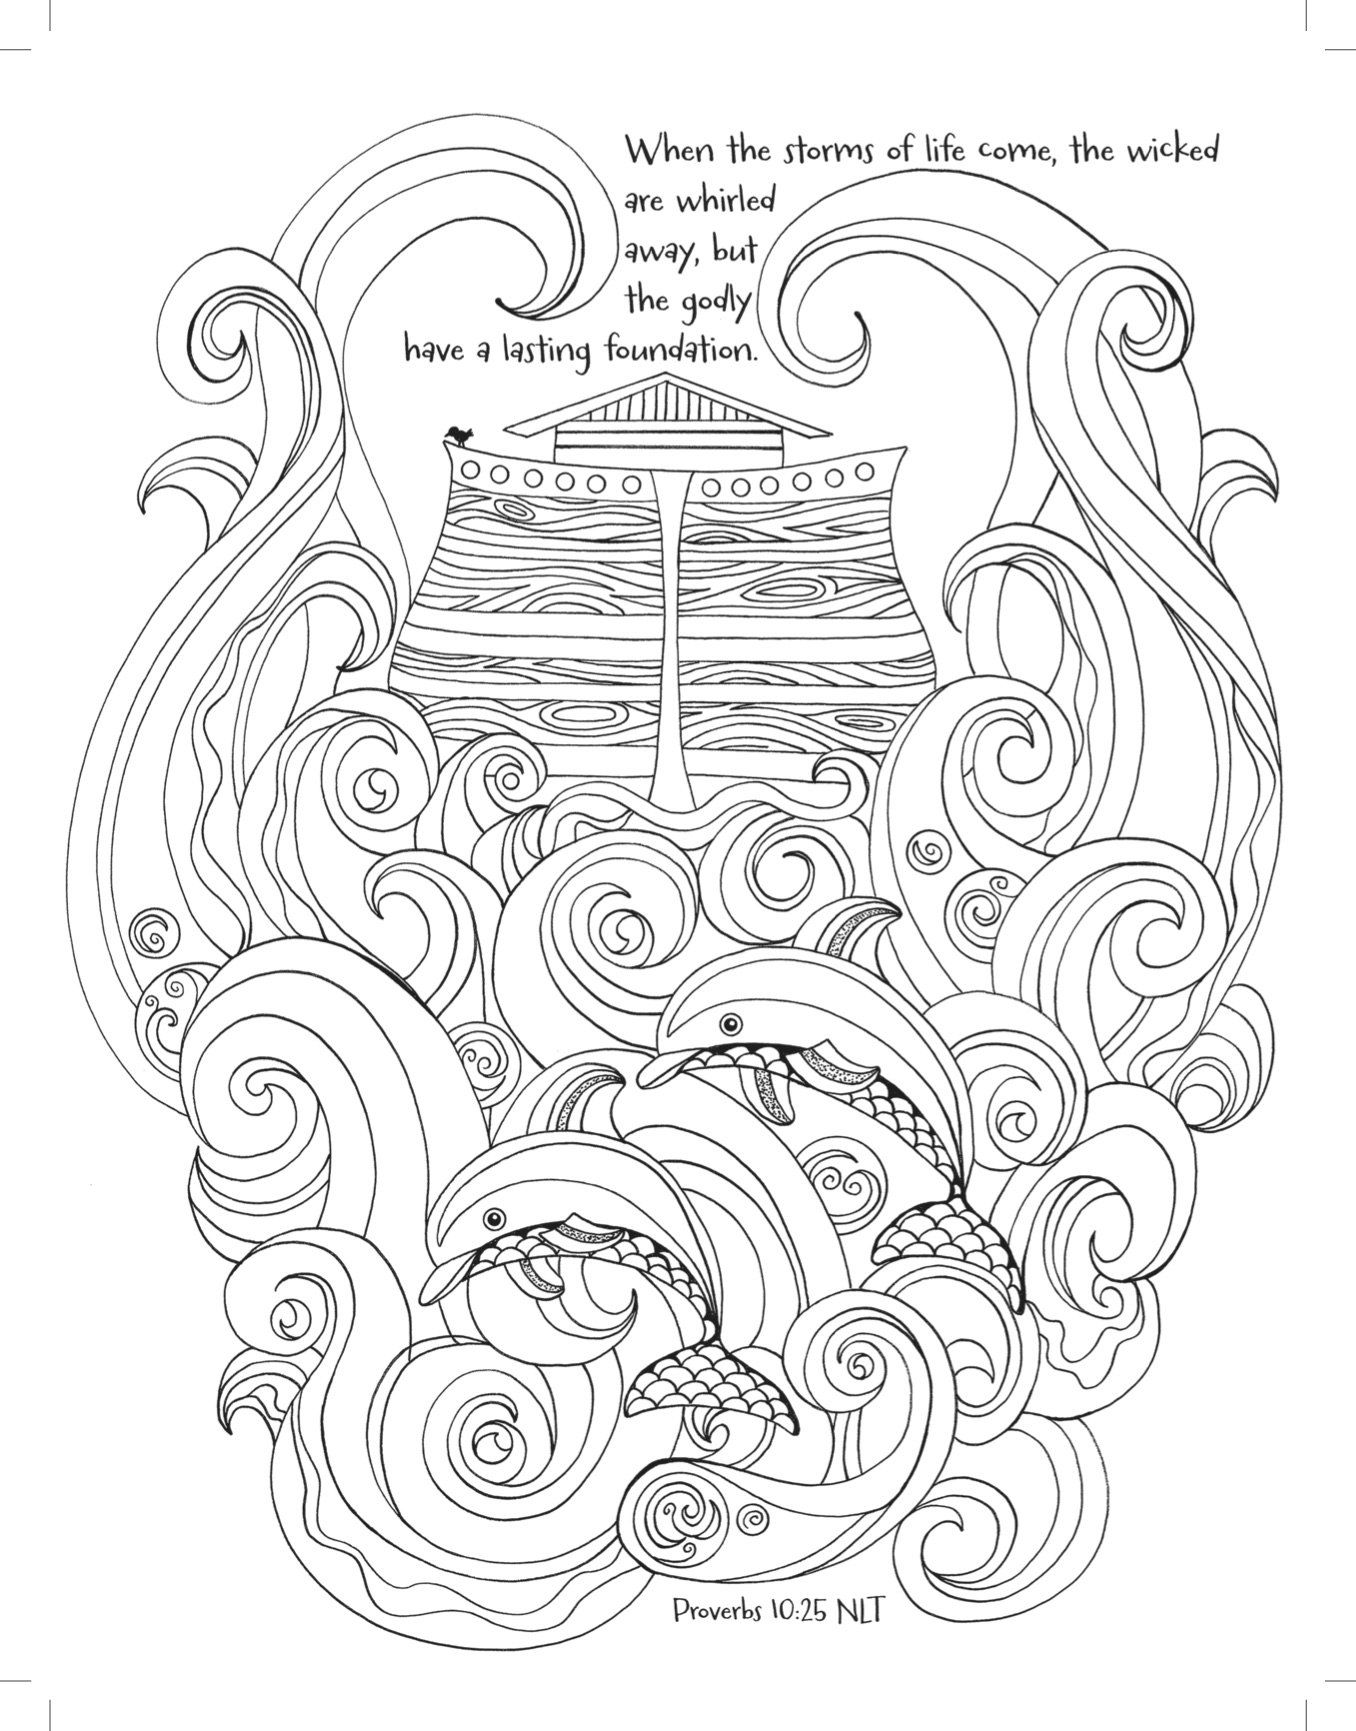 Noah's Ark: Coloring the Great Flood (Majestic Expressions